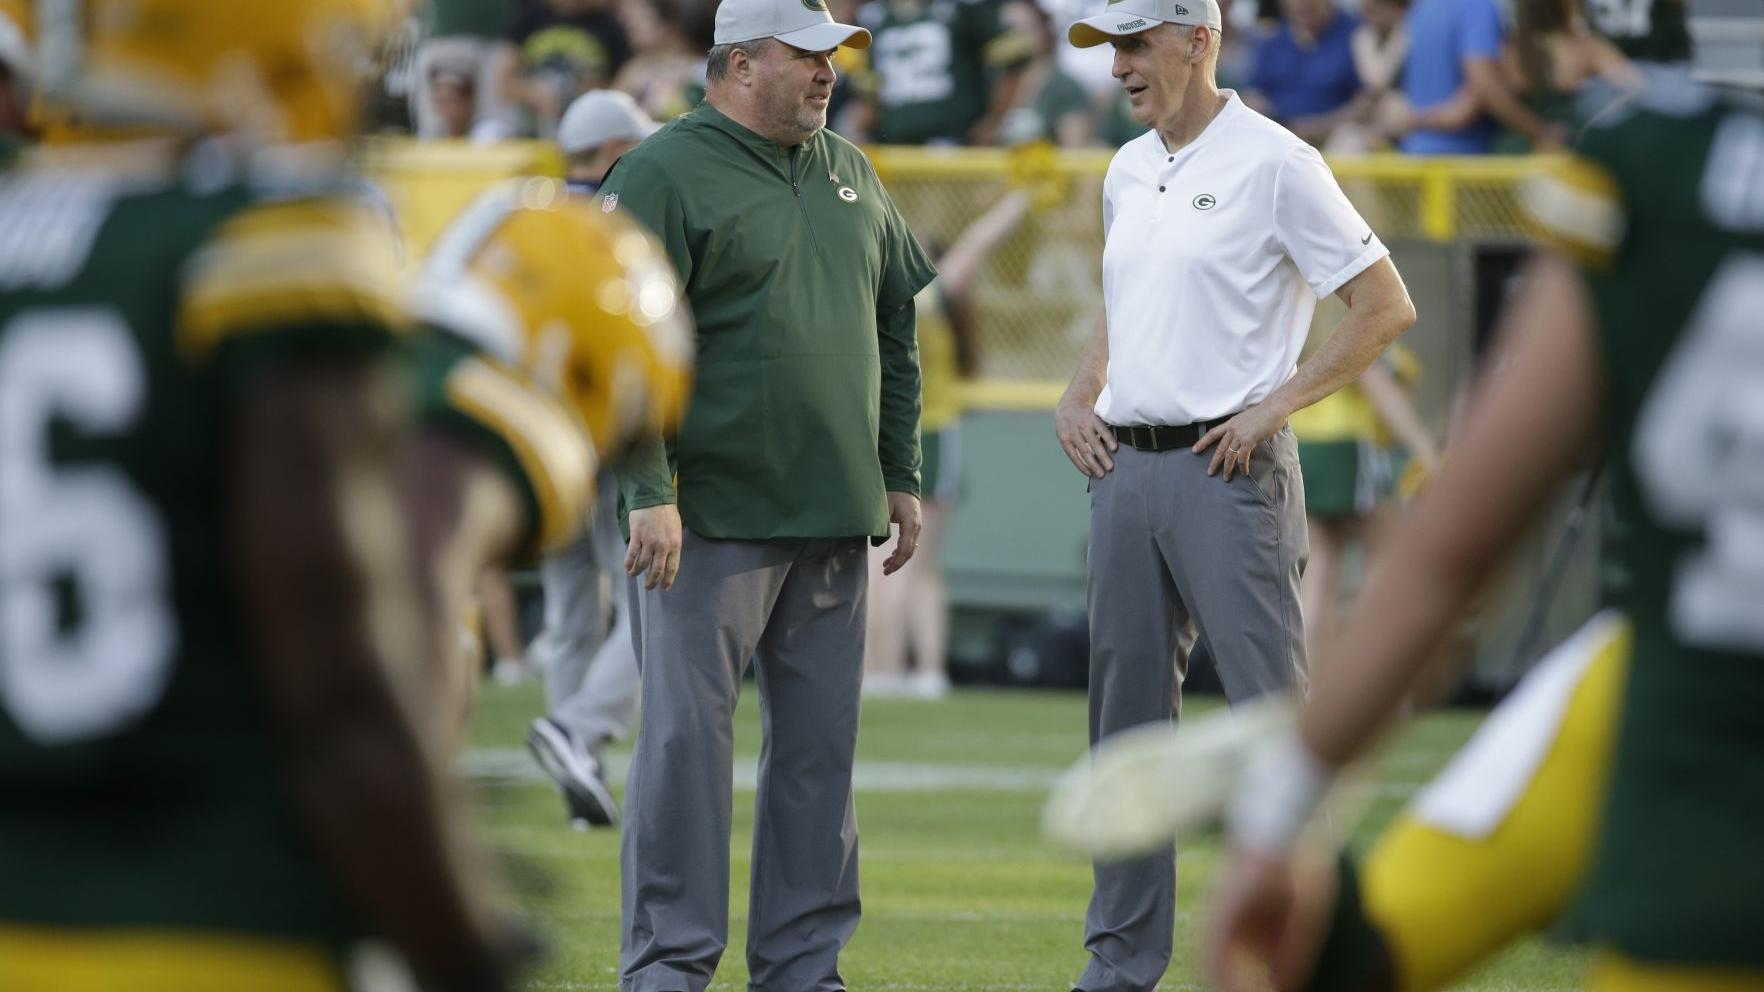 Three things to watch when Green Bay Packers host Atlanta Falcons